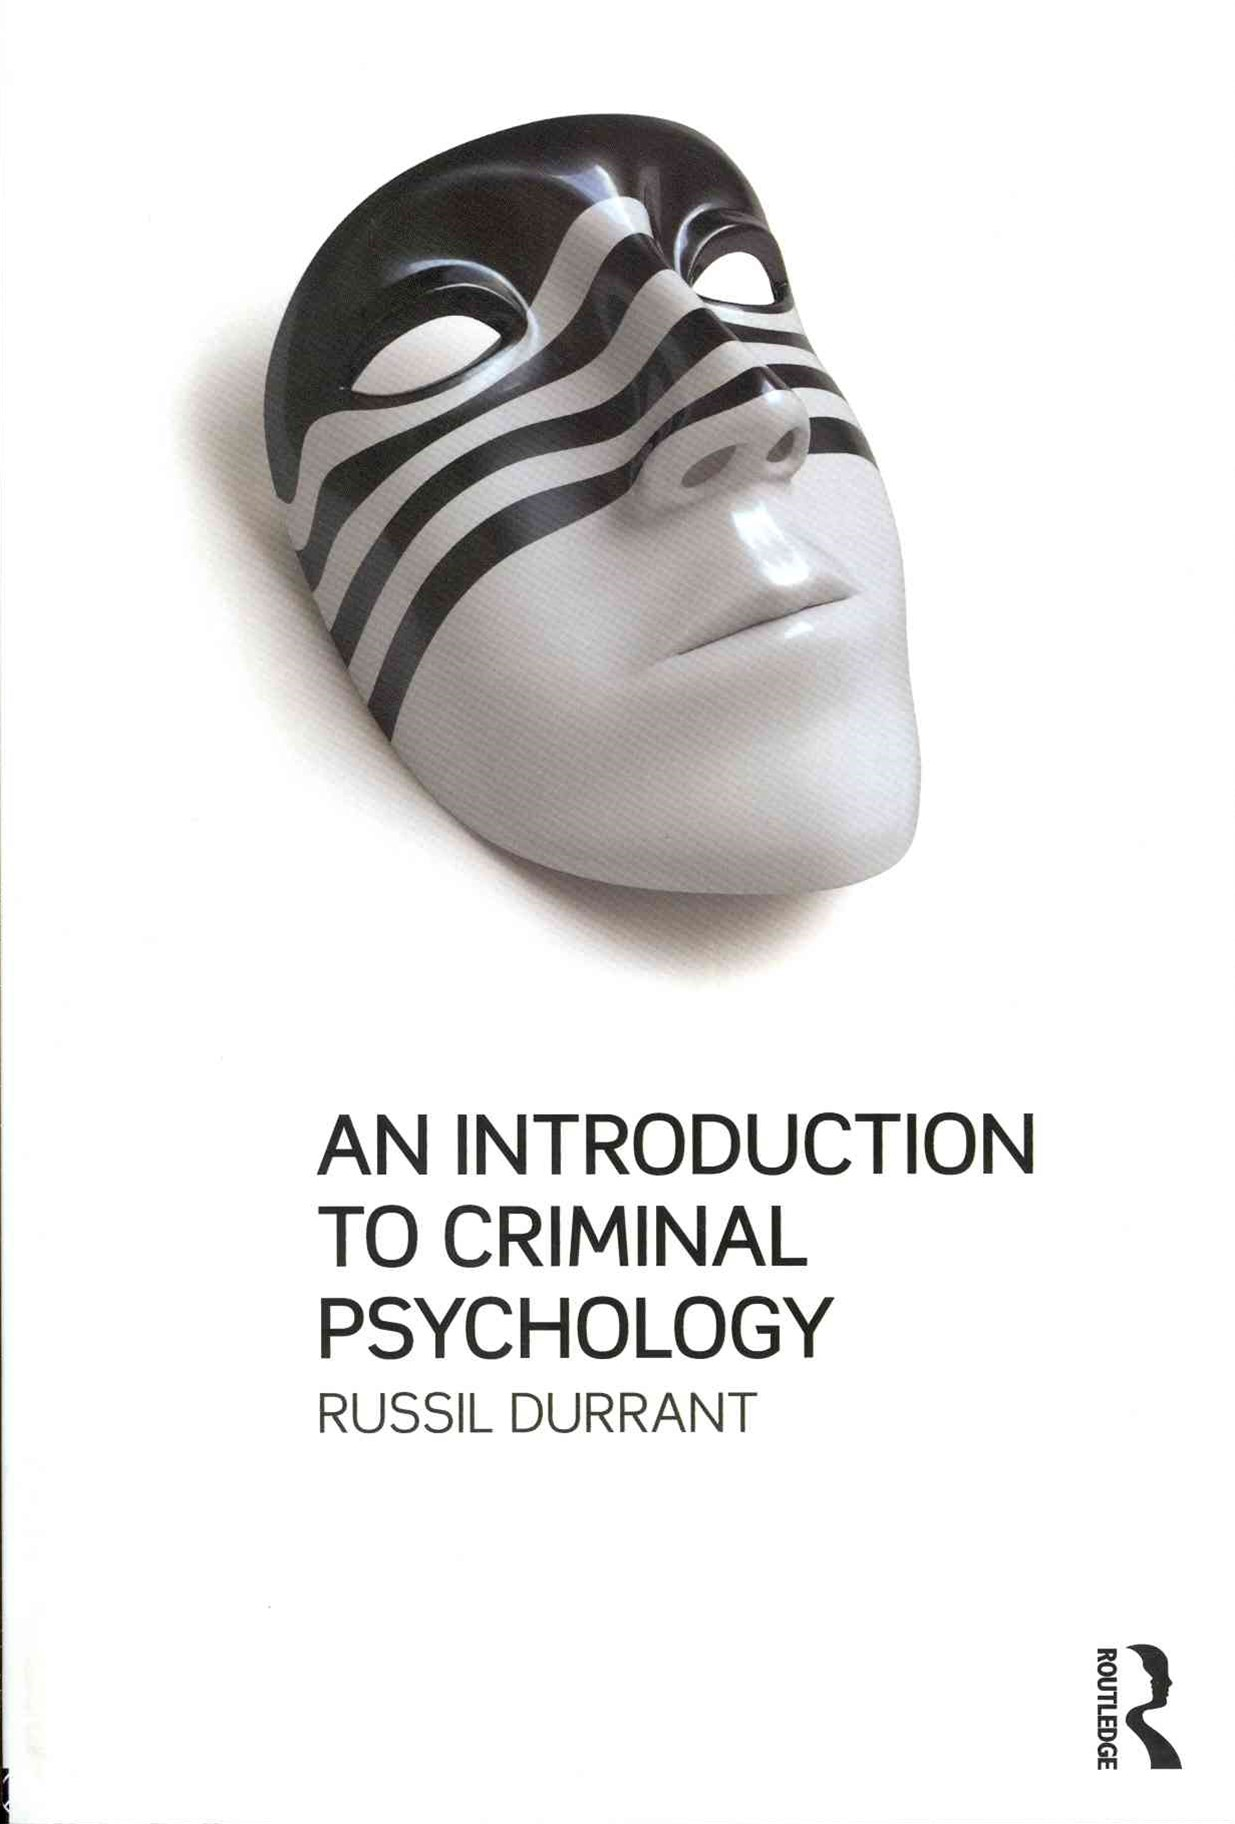 Introduction to Criminal Psychology